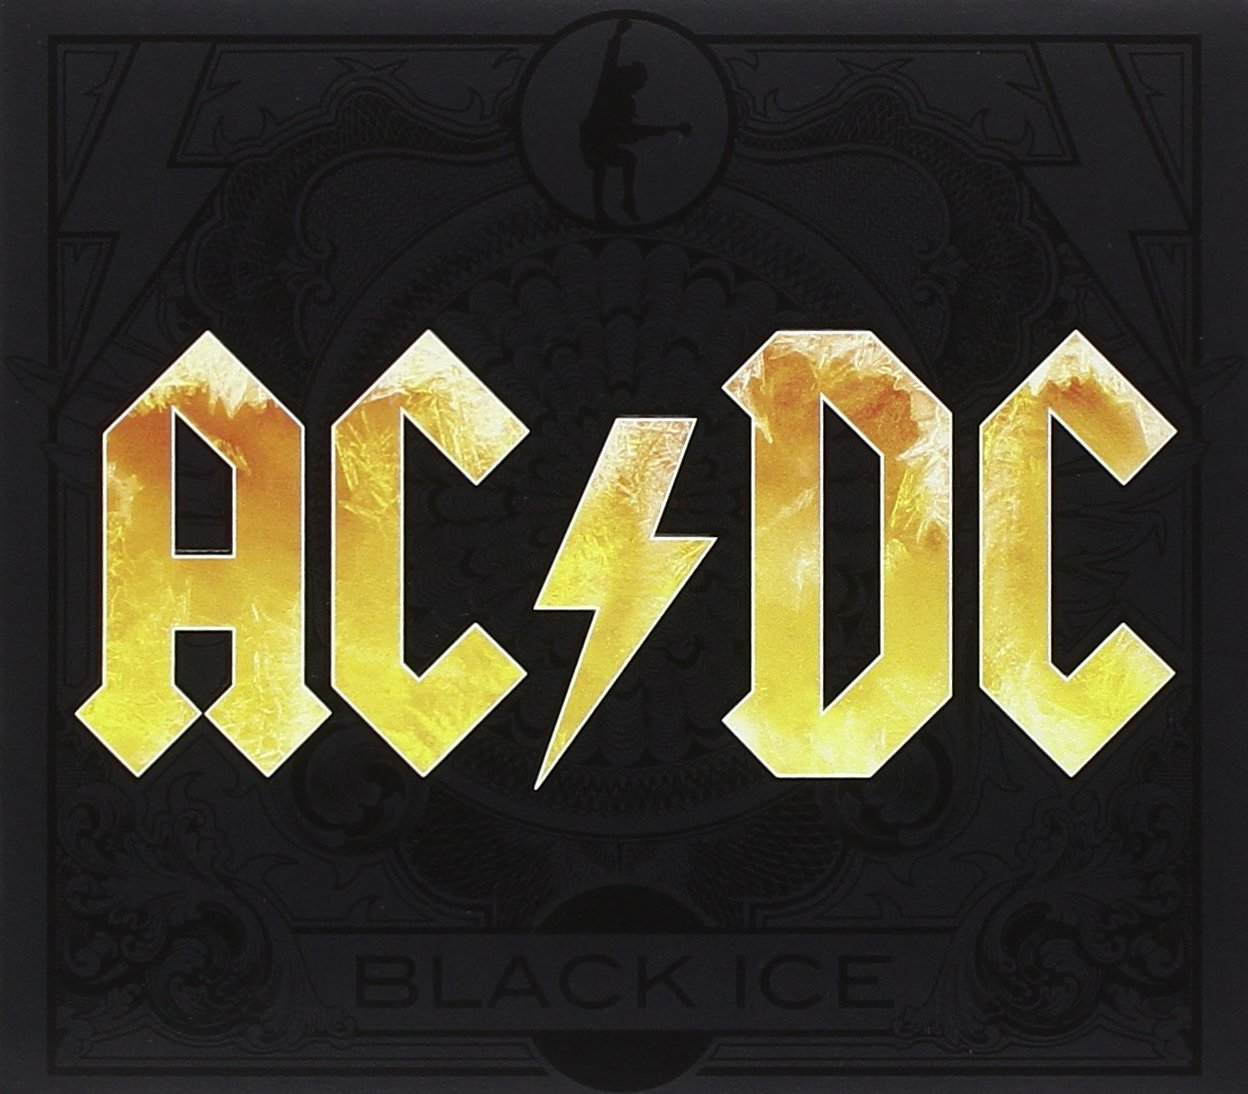 Black Ice (Limited Edition Yellow Cover)